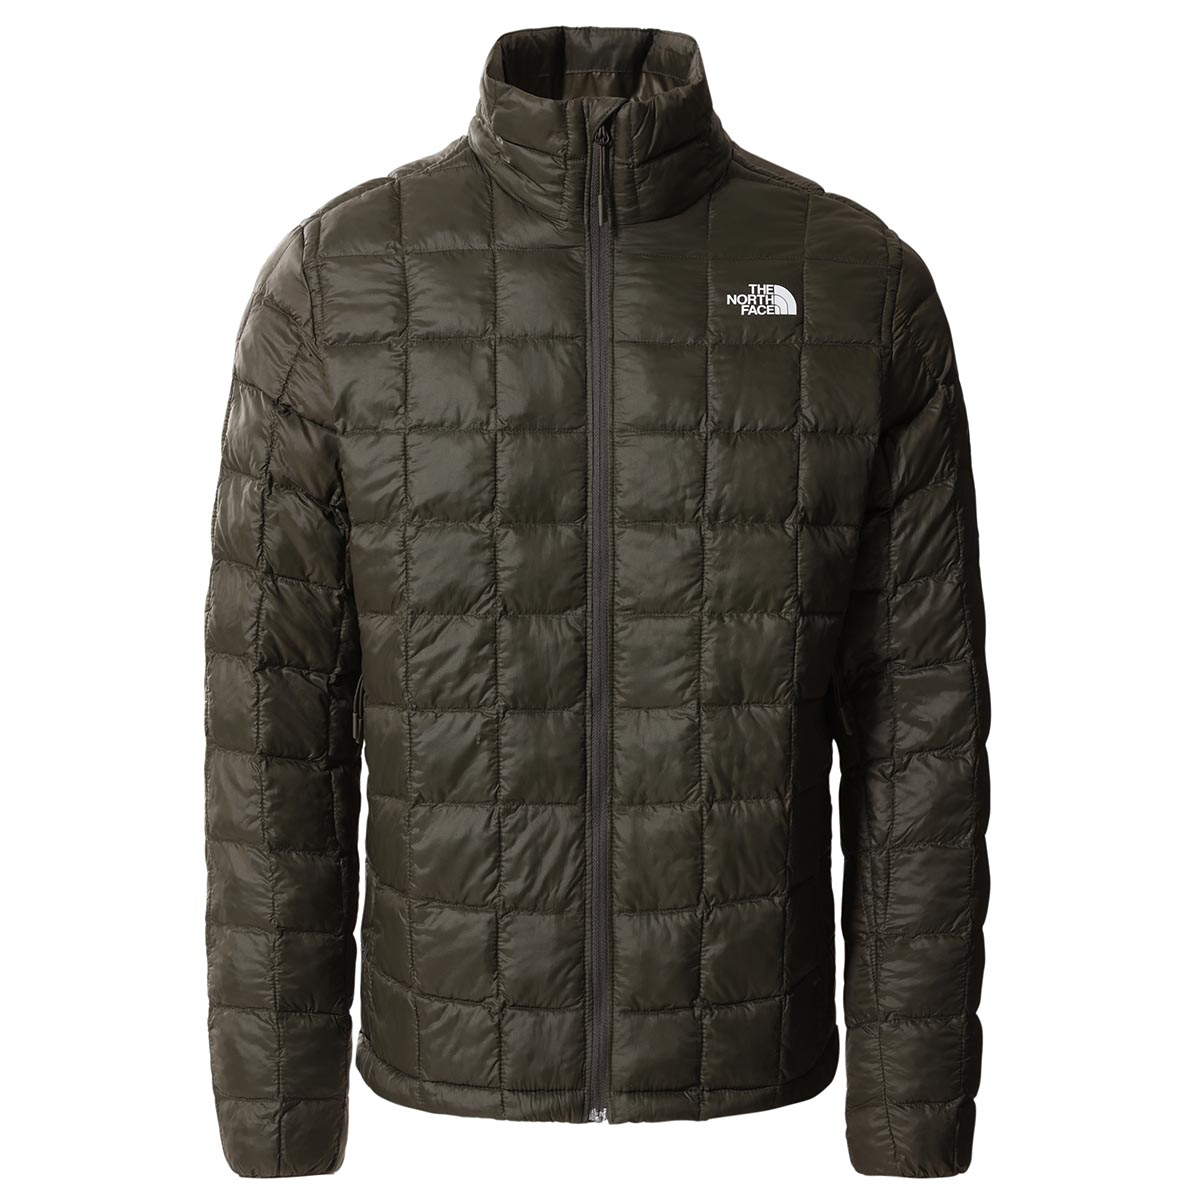 The Northface Erkek THERMOBALL ECO Bere  2.0 NF0A5GLL69F1